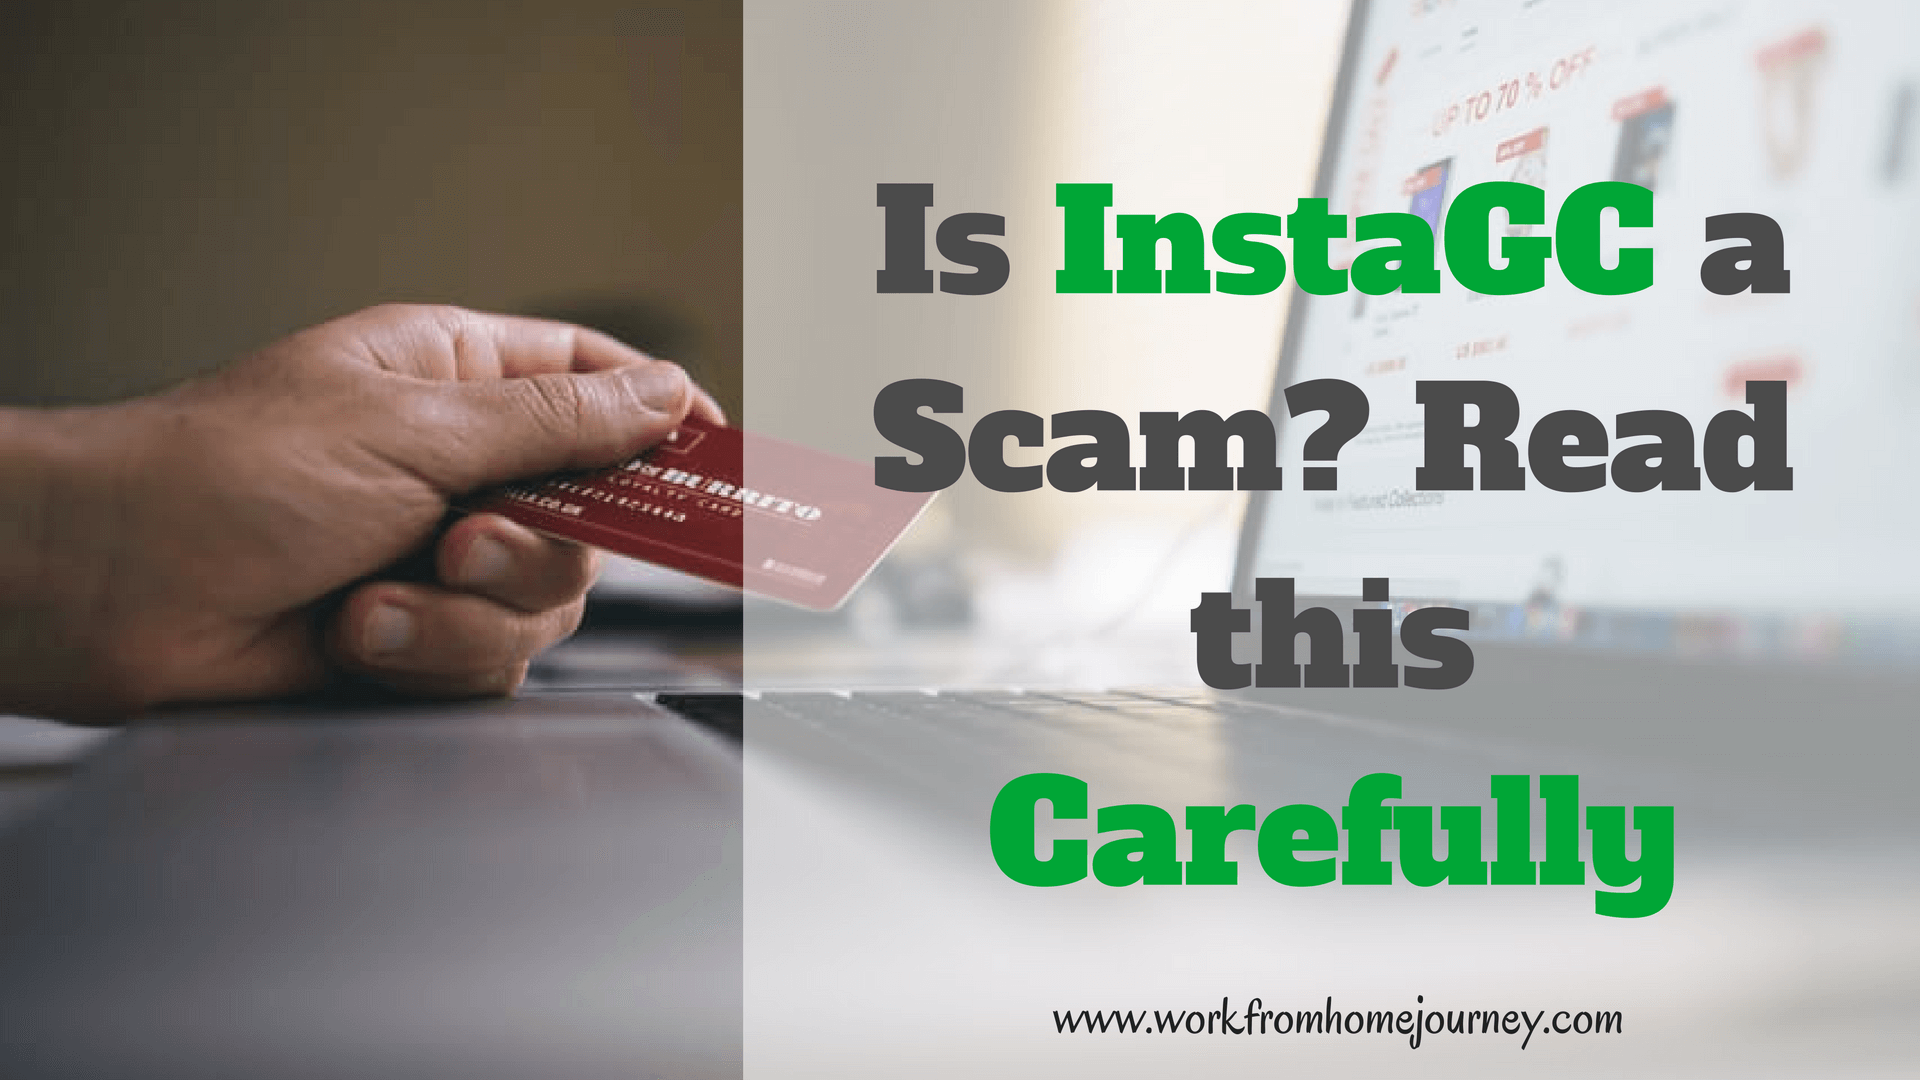 Is InstaGC a Scam? Read this Review Carefully